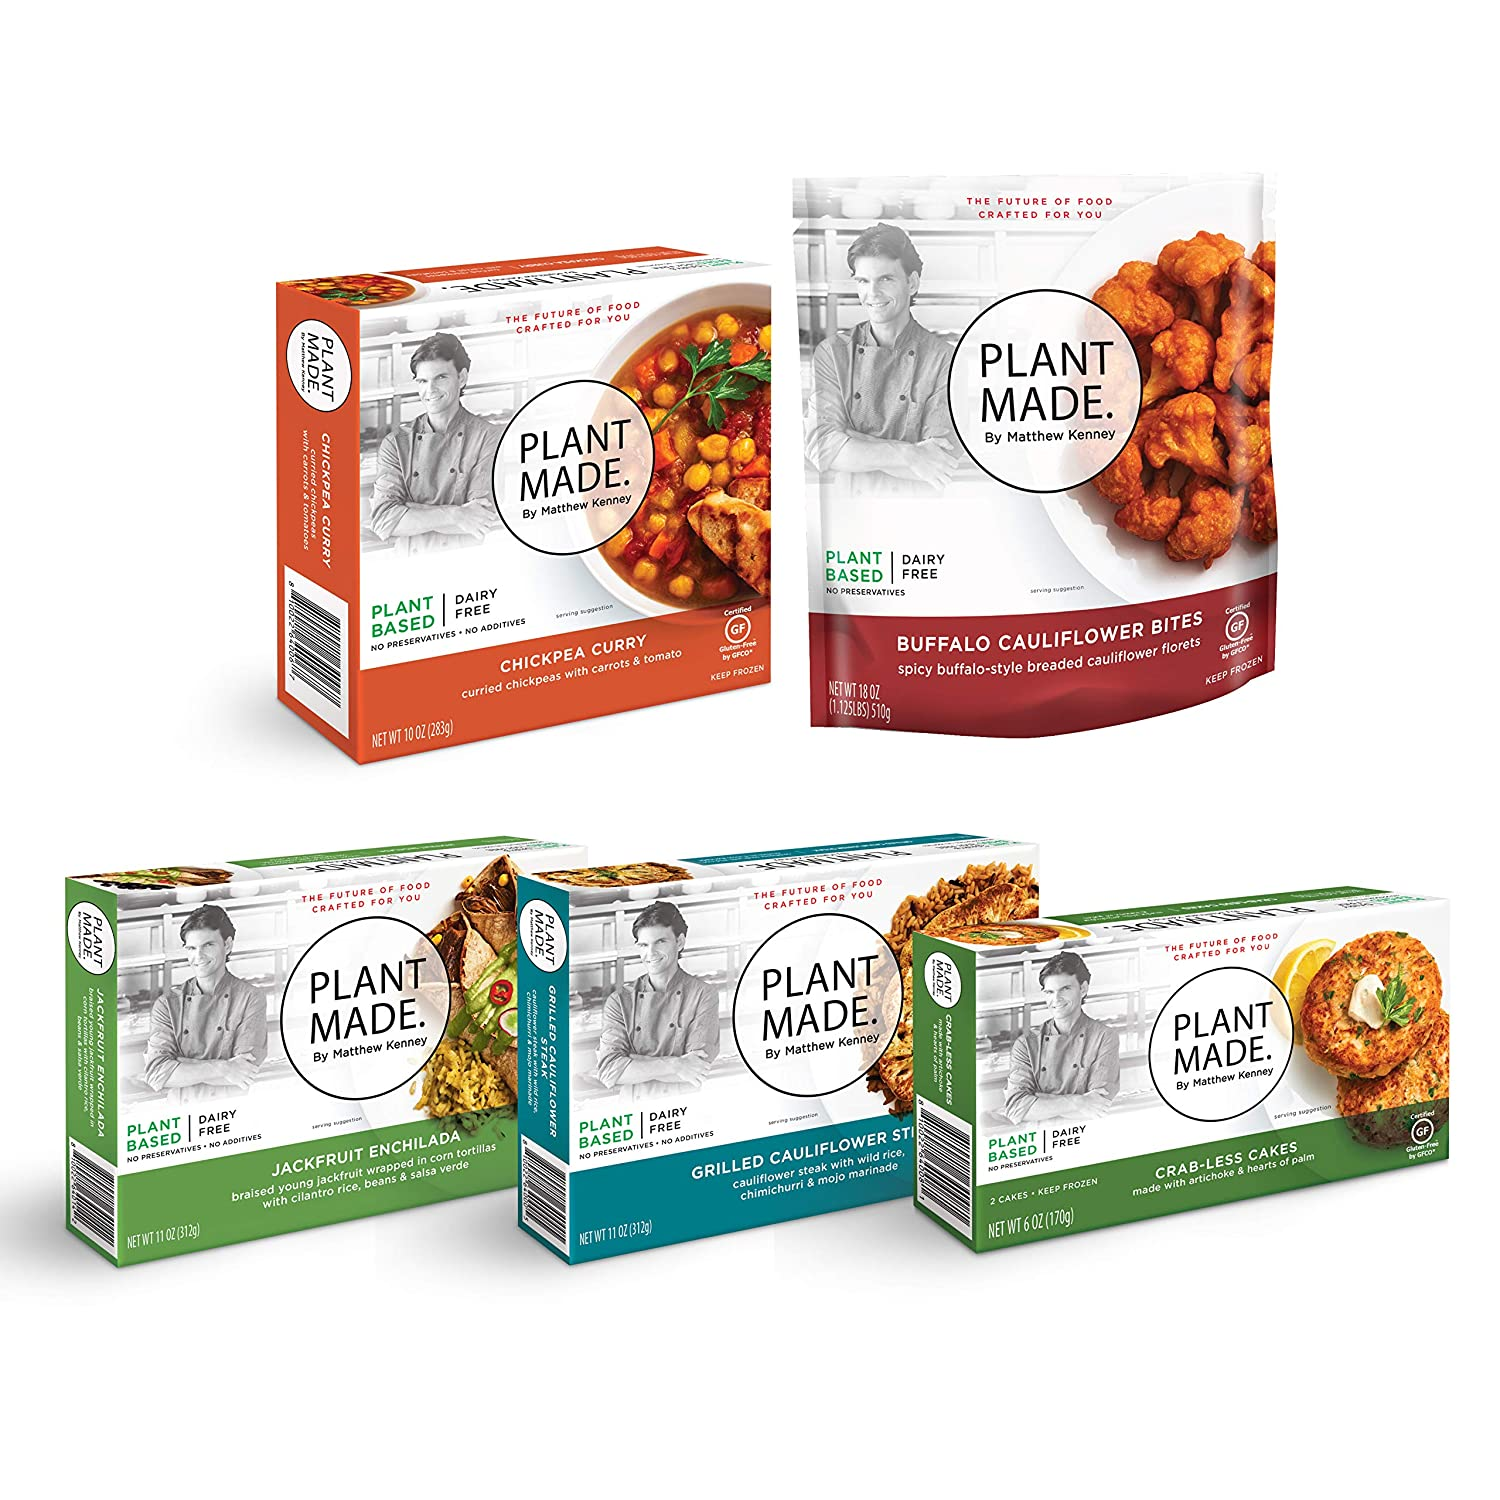 PLANT MADE BY MATTHEW KENNEY. Gluten Free Frozen Meals 5 Pack. Plant Based, Dairy Free, Vegan Food. Quick, Healthy, & Easy Vegetarian Snacks & Dinners. Delicious ready to eat prepared meals & entrees.